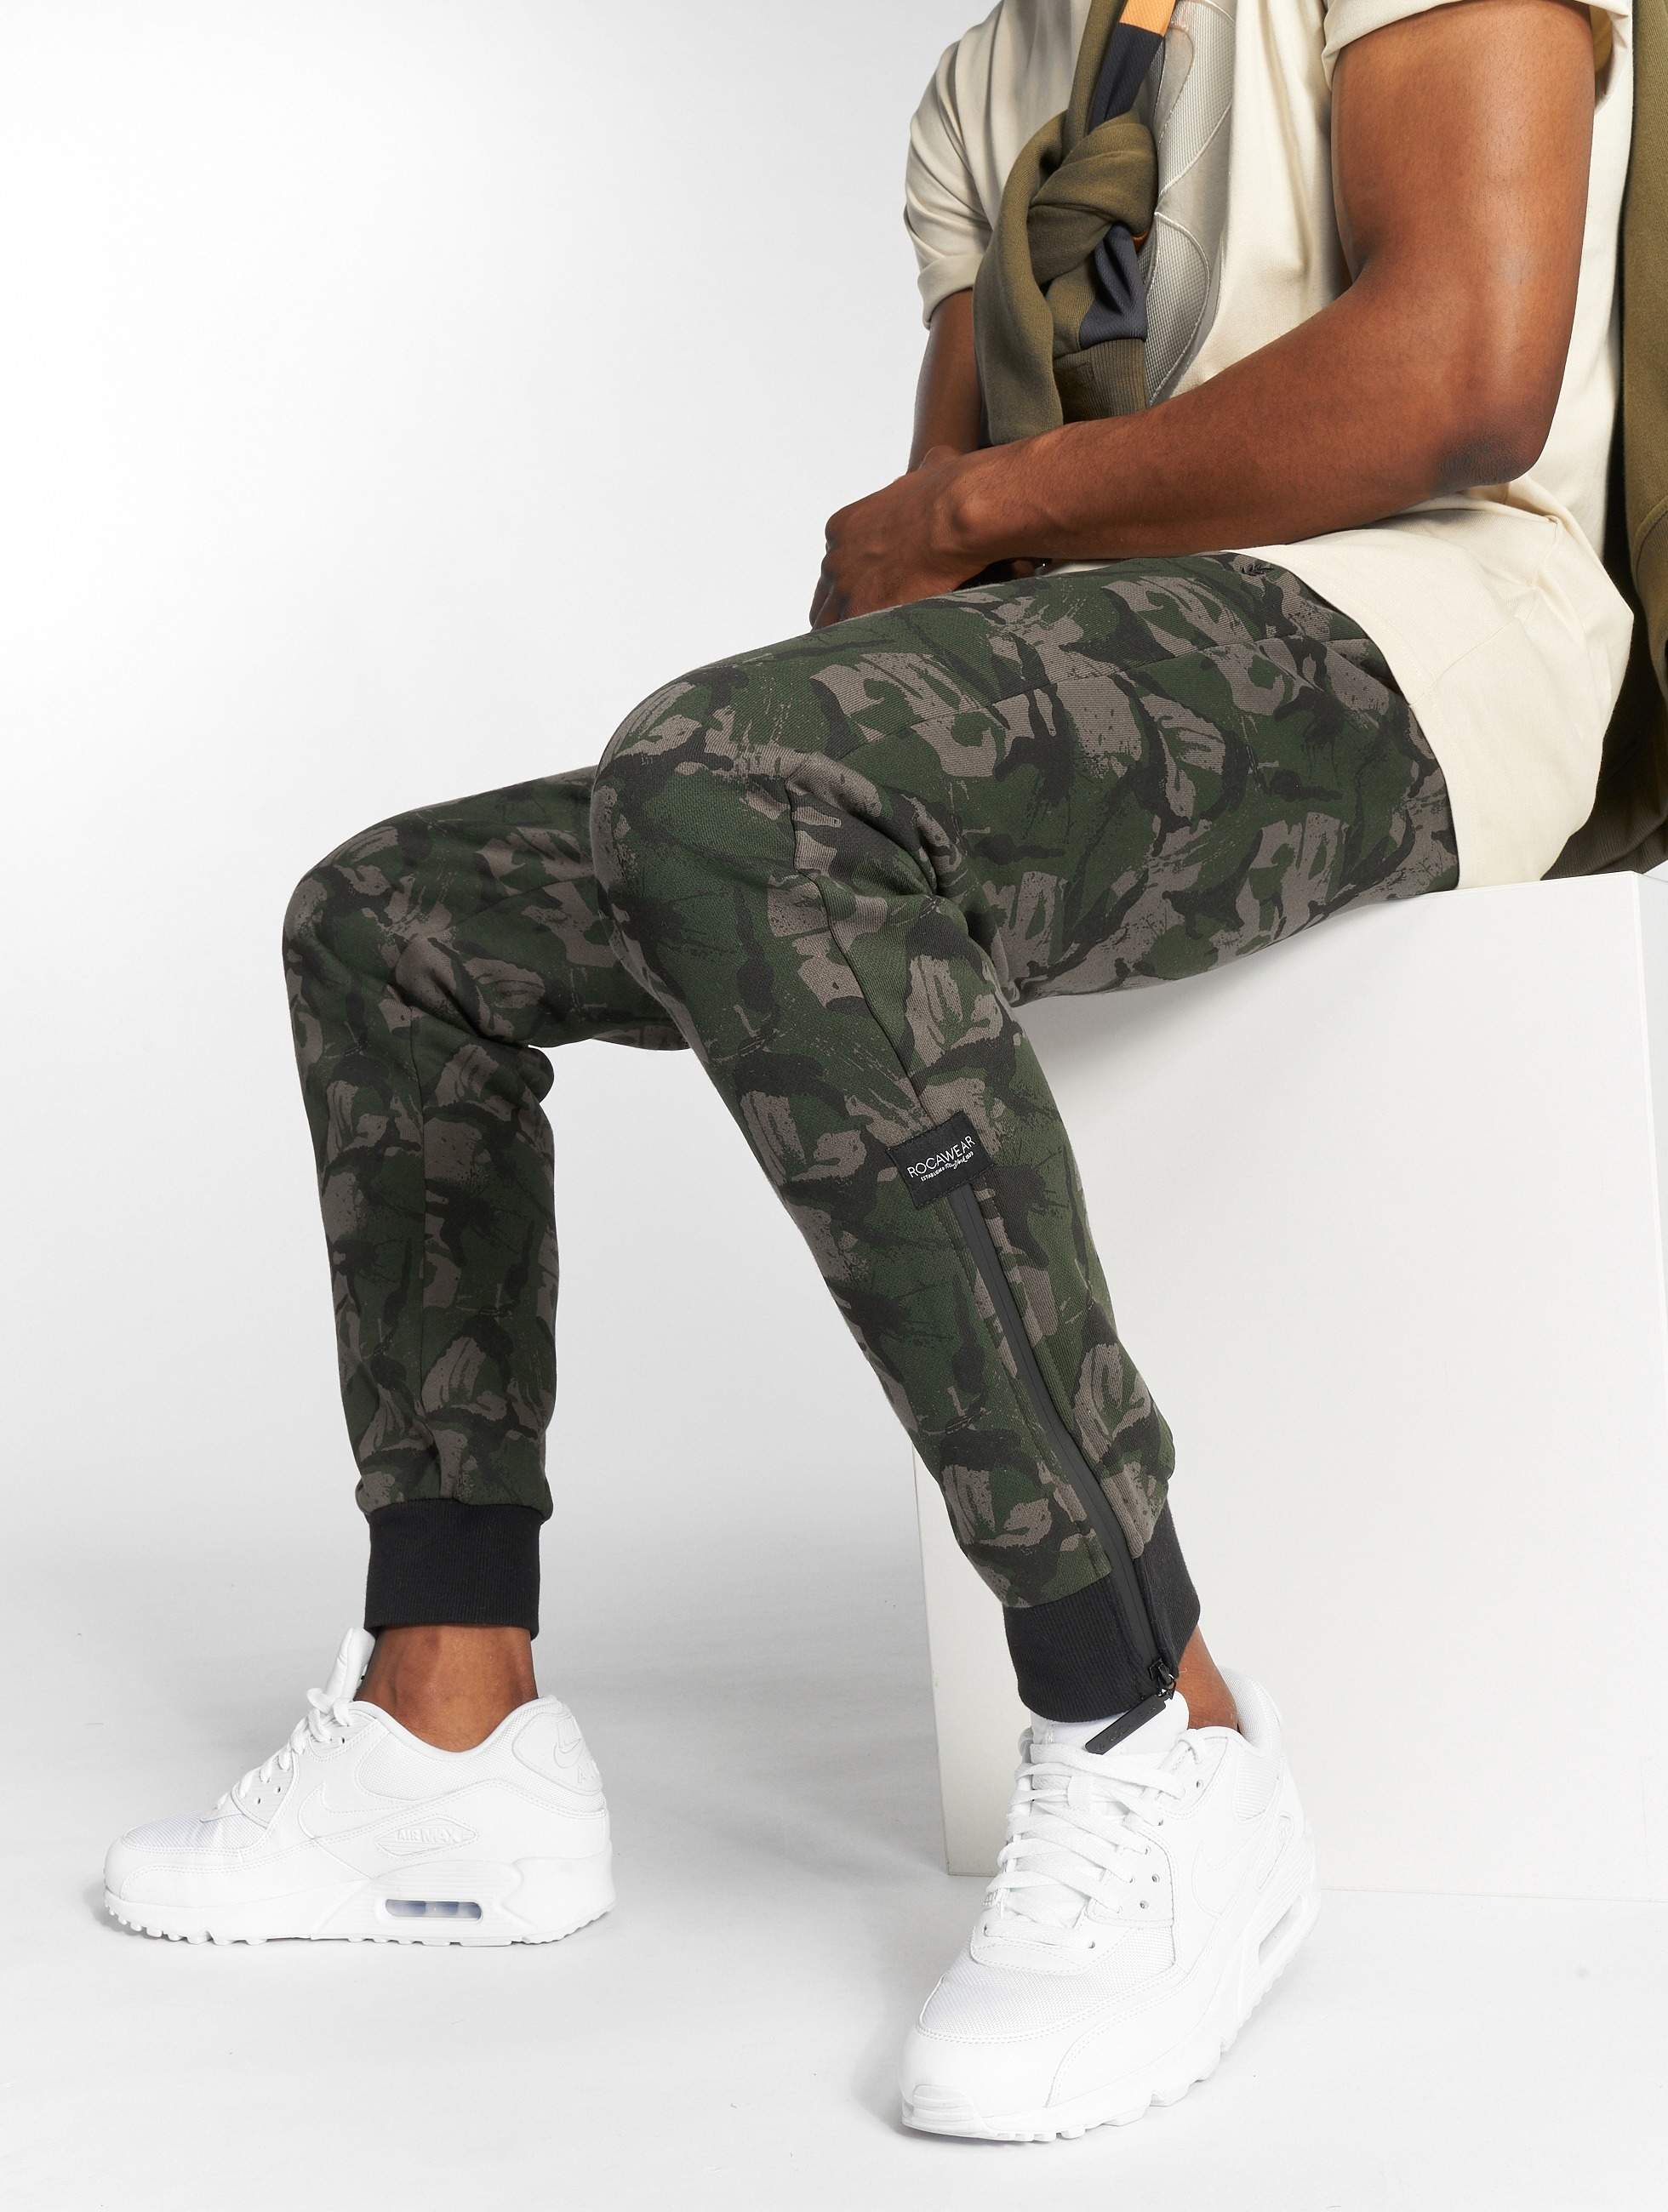 Rocawear / Sweat Pant Camou Fleece in camouflage S